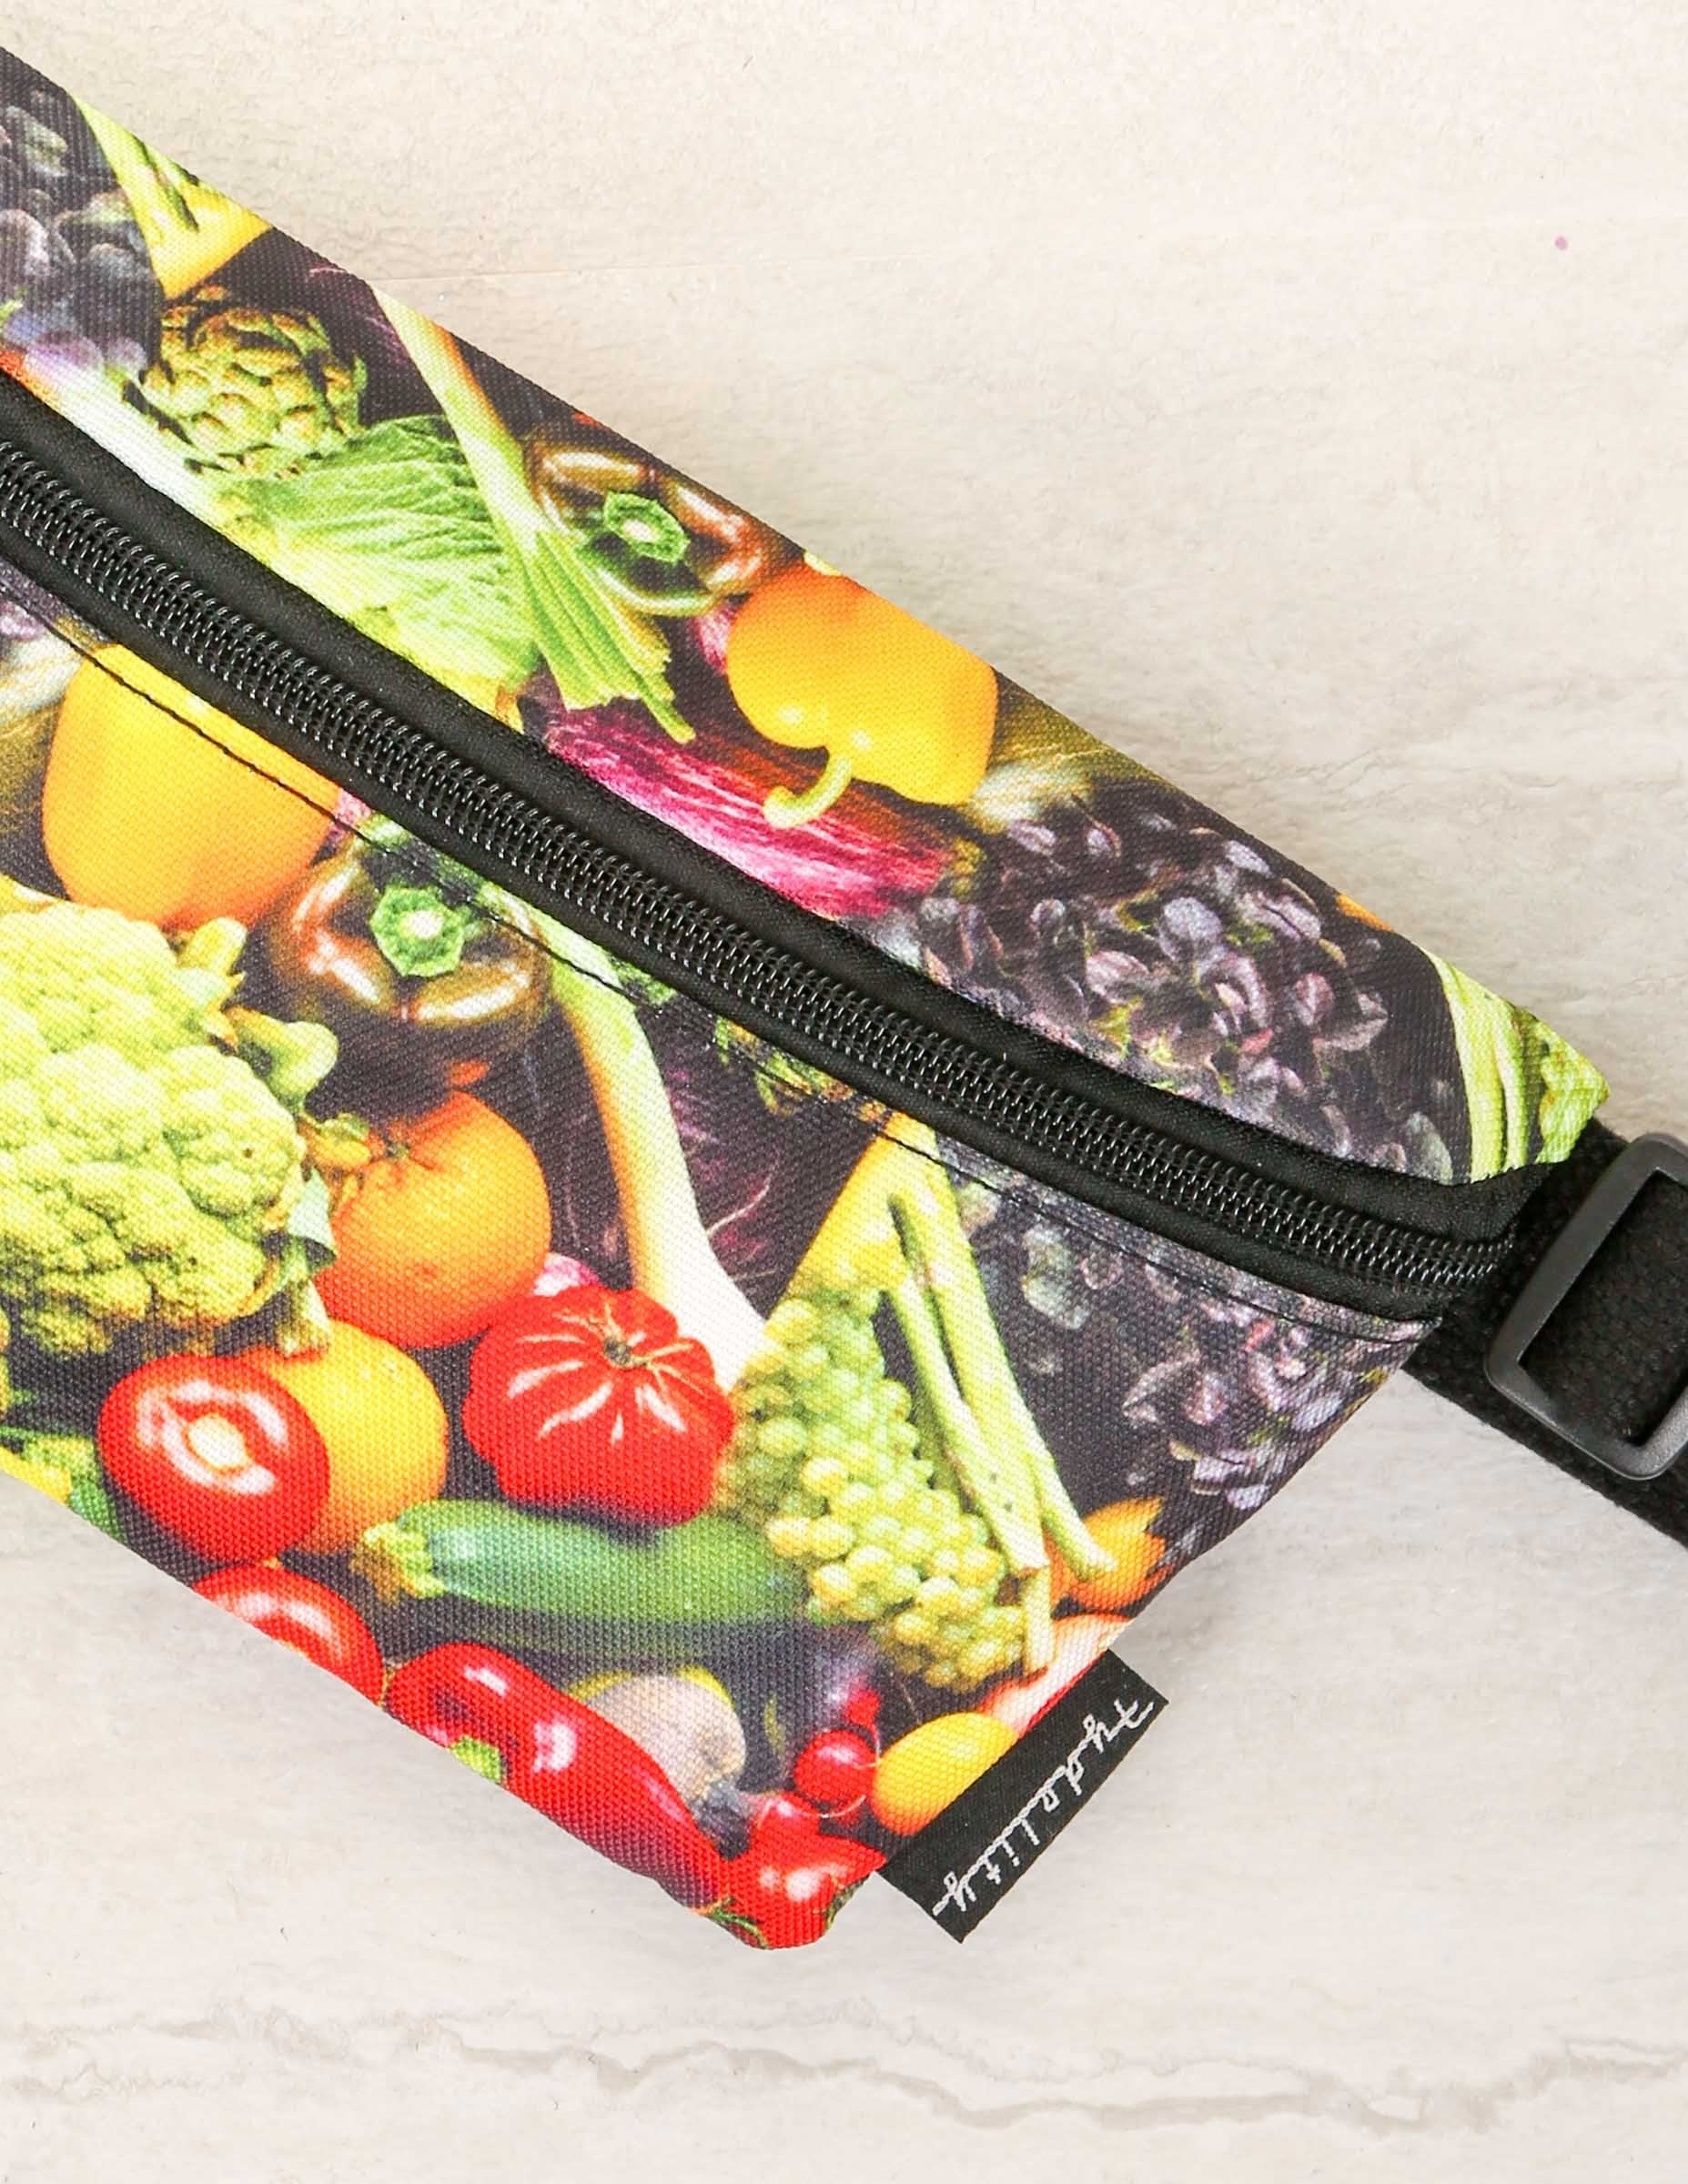 83114: FYDELITY- Ultra-Slim Fanny Pack: Veggies